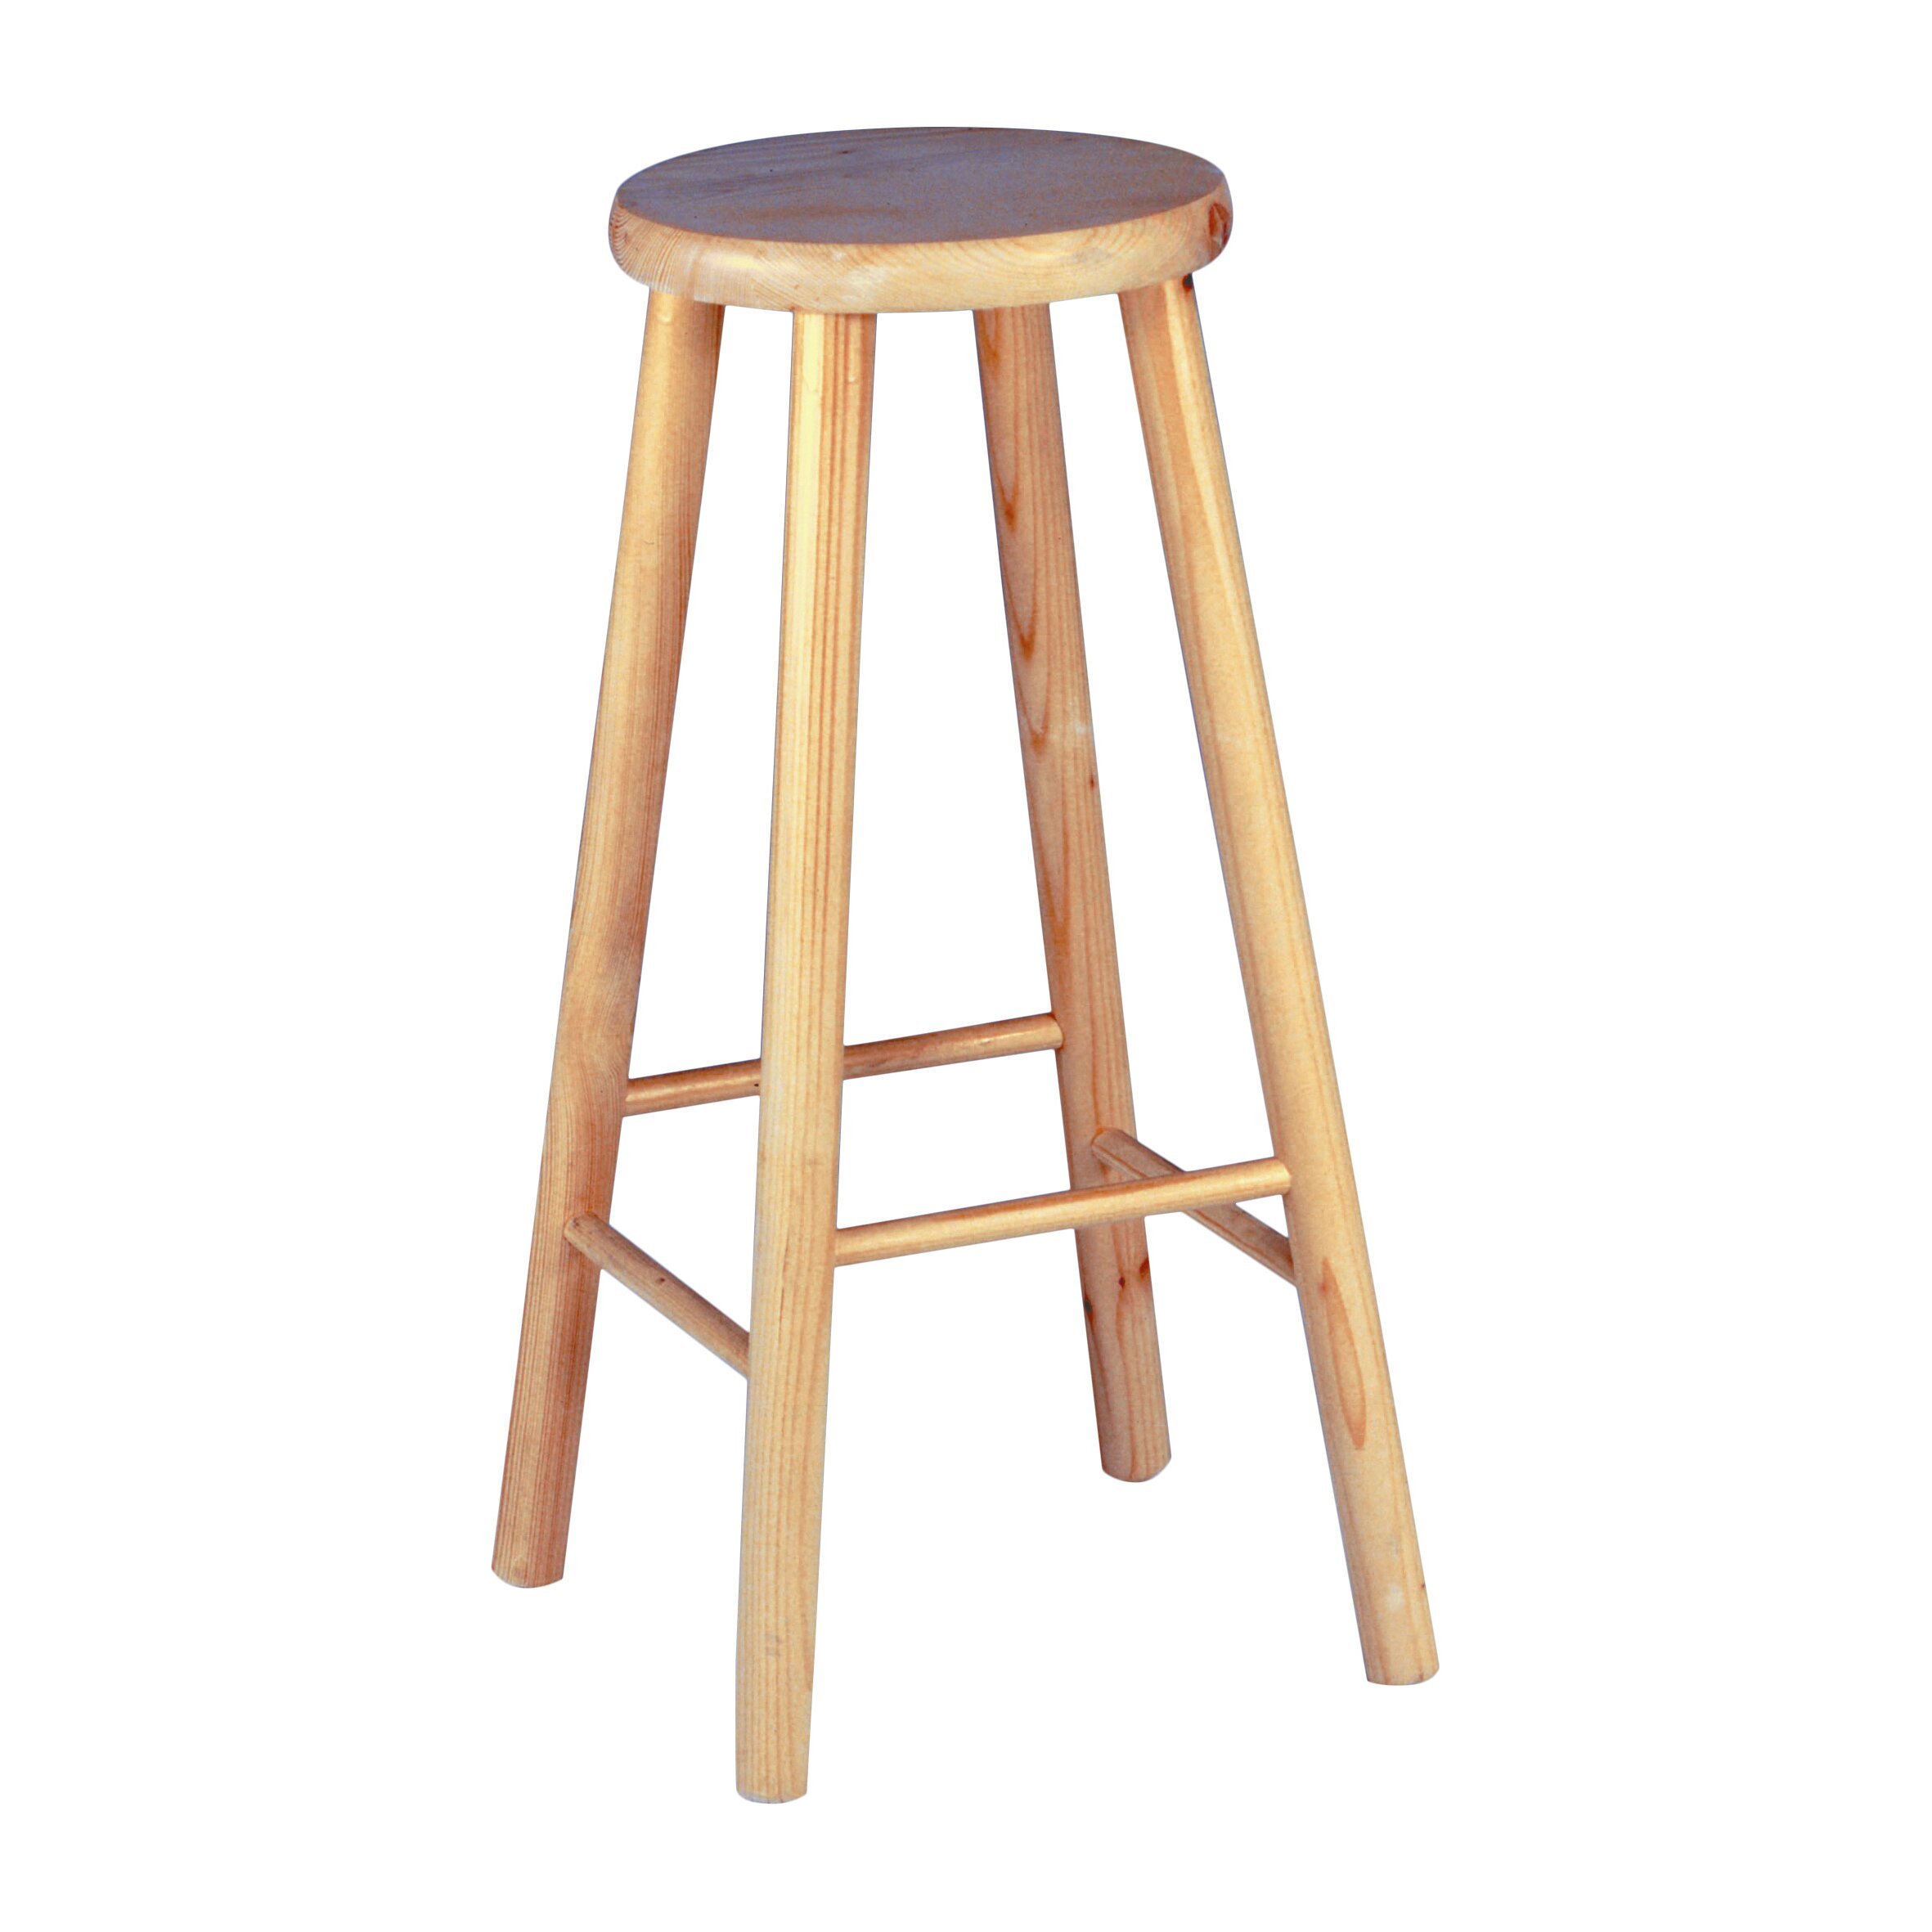 AlpenHome Laporte Bar Stool& Reviews Wayfair UK # Tabouret Bar Bois Brut